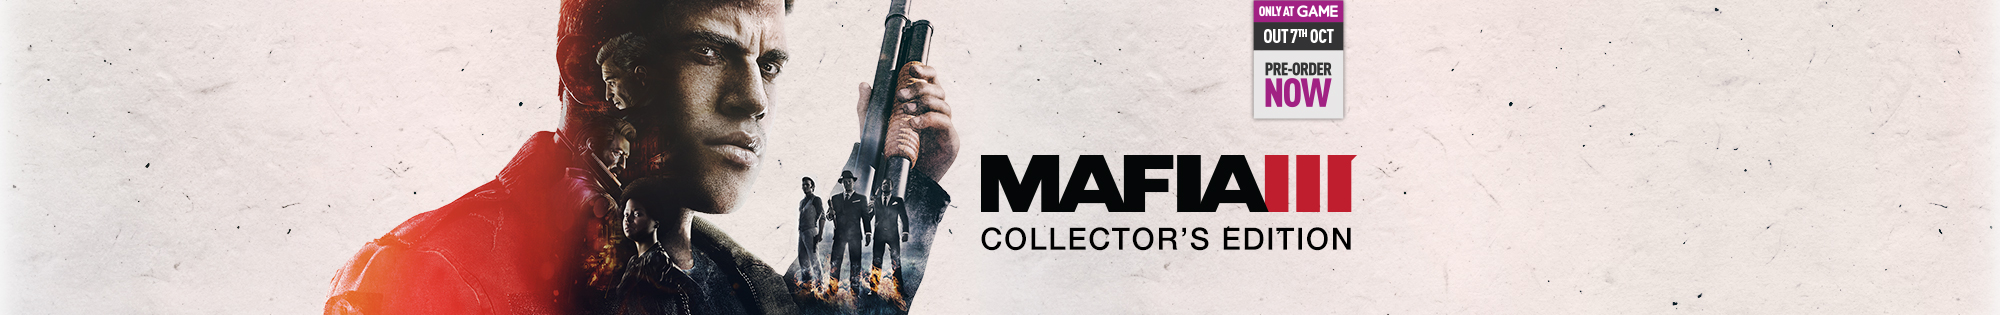 Mafia 3 Only at GAME Collector's Edition on Xbox One and PS4- Pre-order Now at GAME.co.uk!